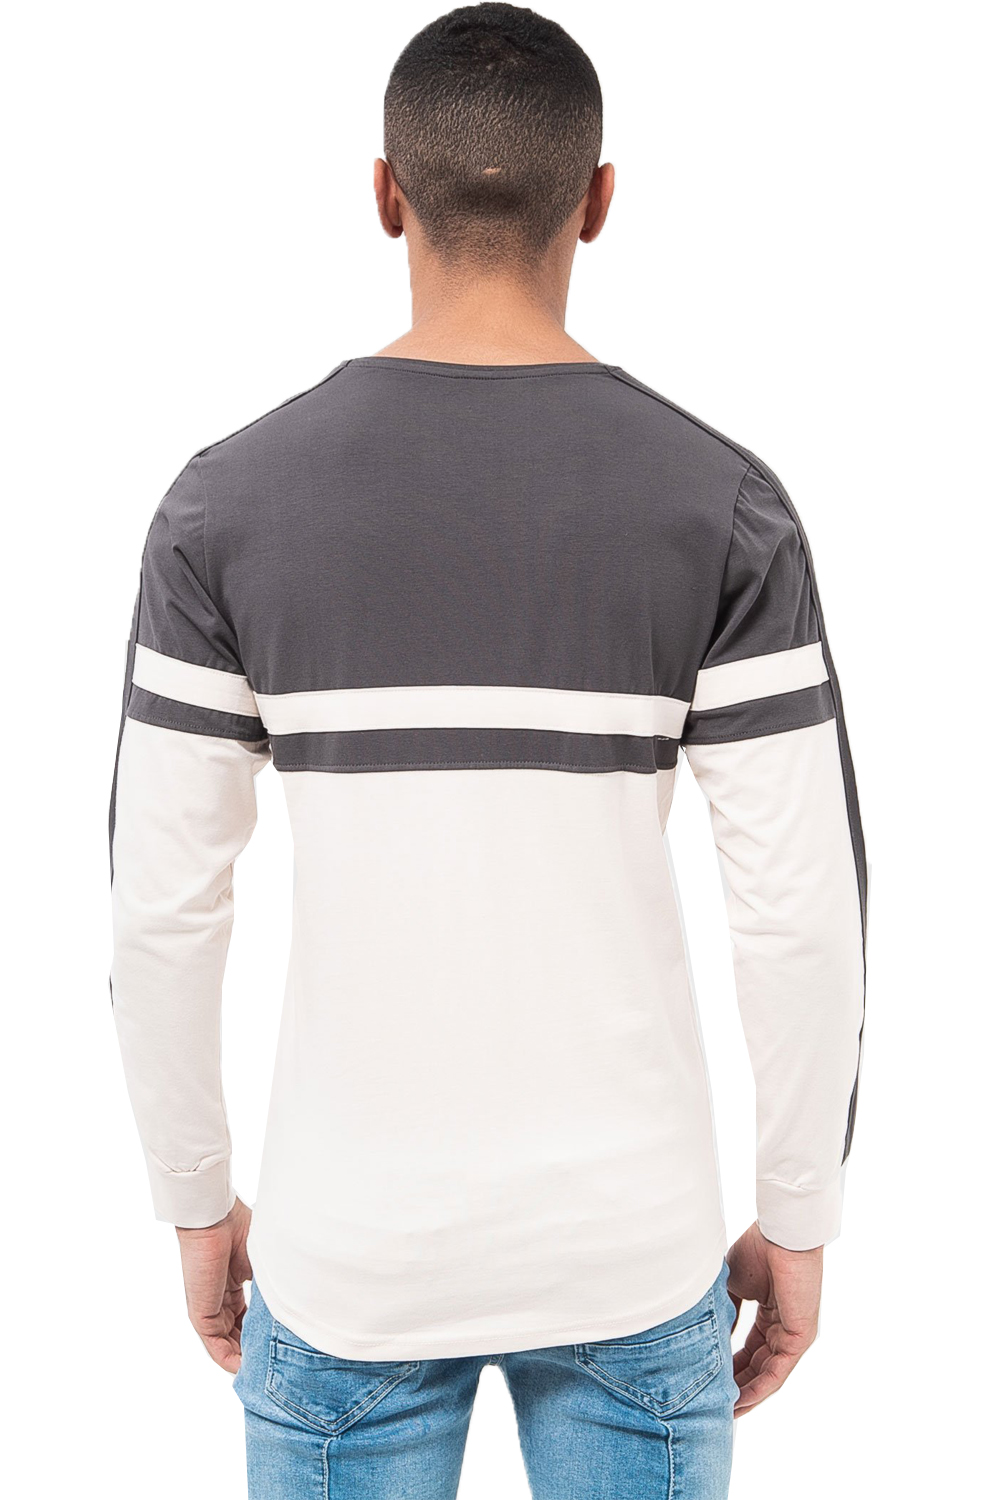 Da-Uomo-Crosshatch-Manica-Lunga-Top-Stampato-Girocollo-a-Righe-in-grassetto-FASHION-Tees miniatura 4